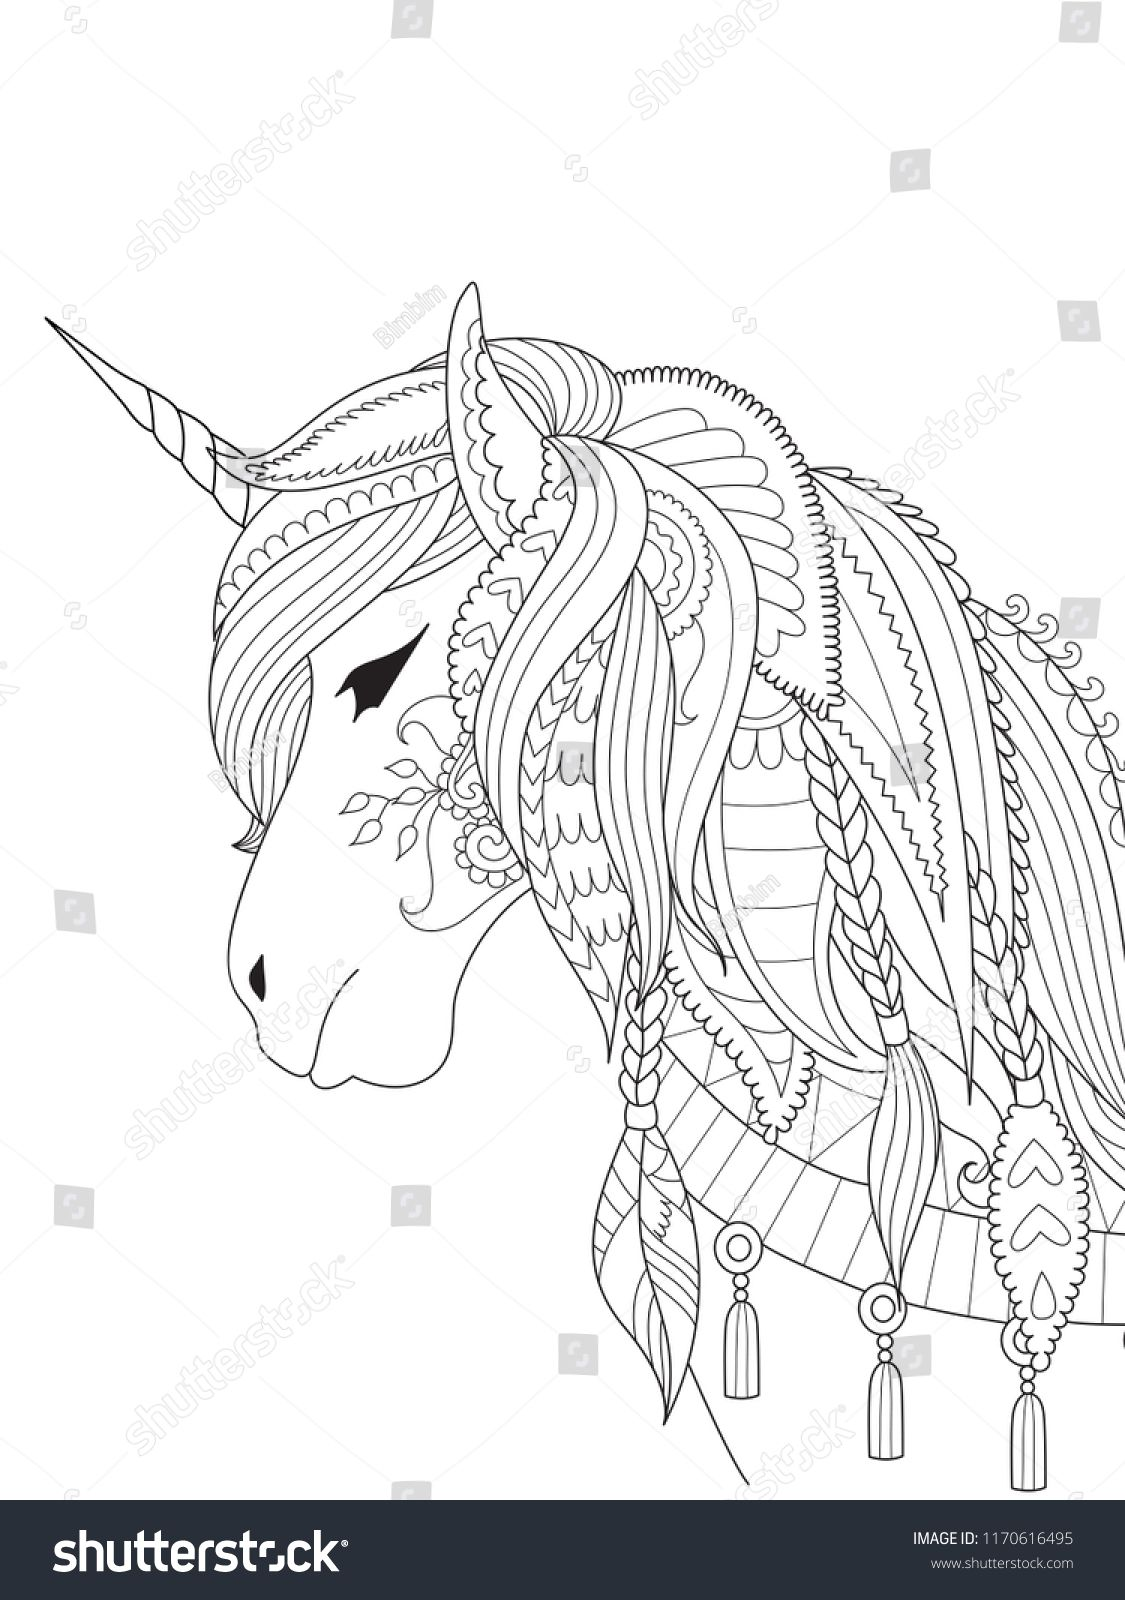 Simple Line Art Of Unicorn For Design Element And Coloring Book Page On App Vector Illustrationunicorn De Unicorn Coloring Pages Horse Coloring Pages Line Art